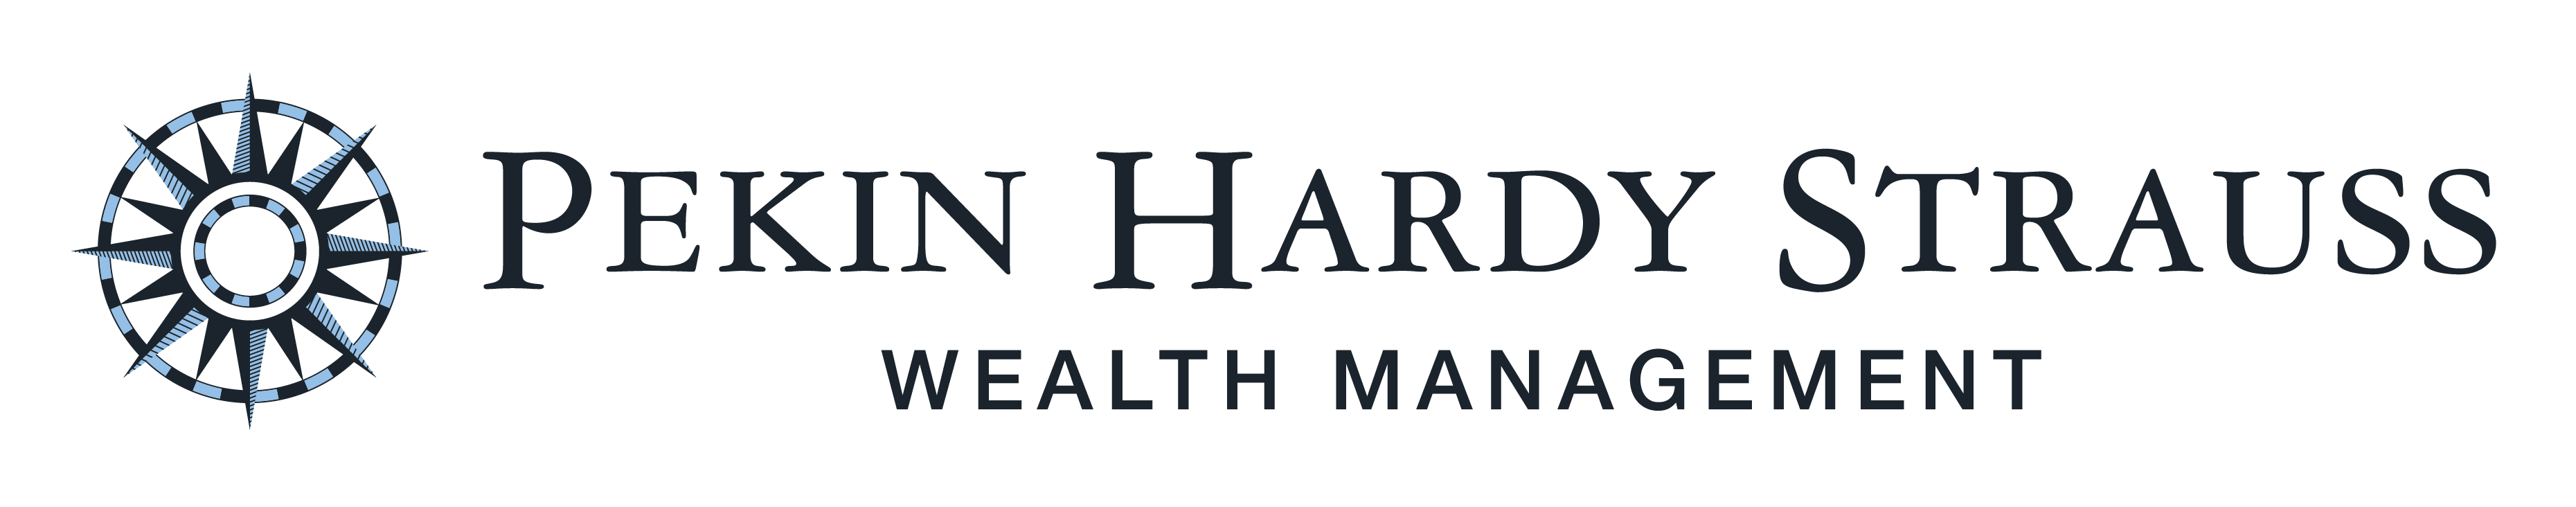 Logo for Pekin Hardy Strauss Wealth Management